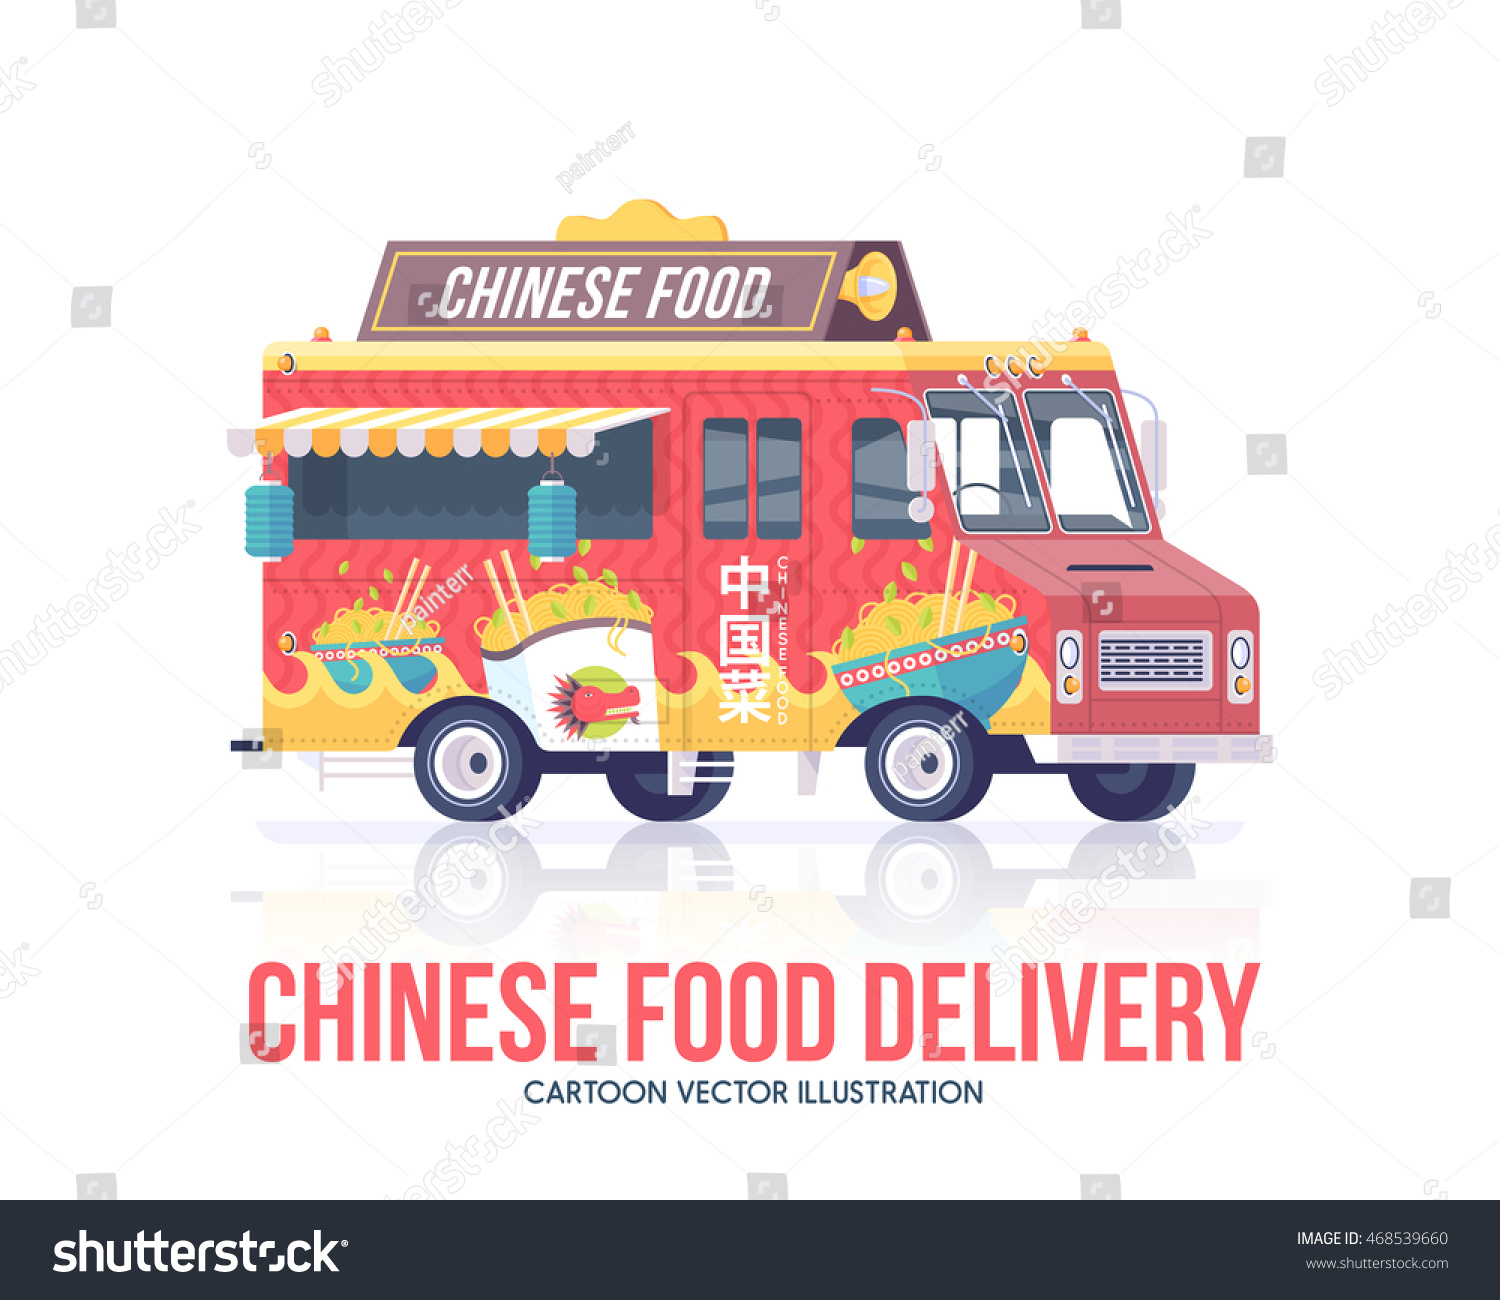 Weekly Food Delivery Miami